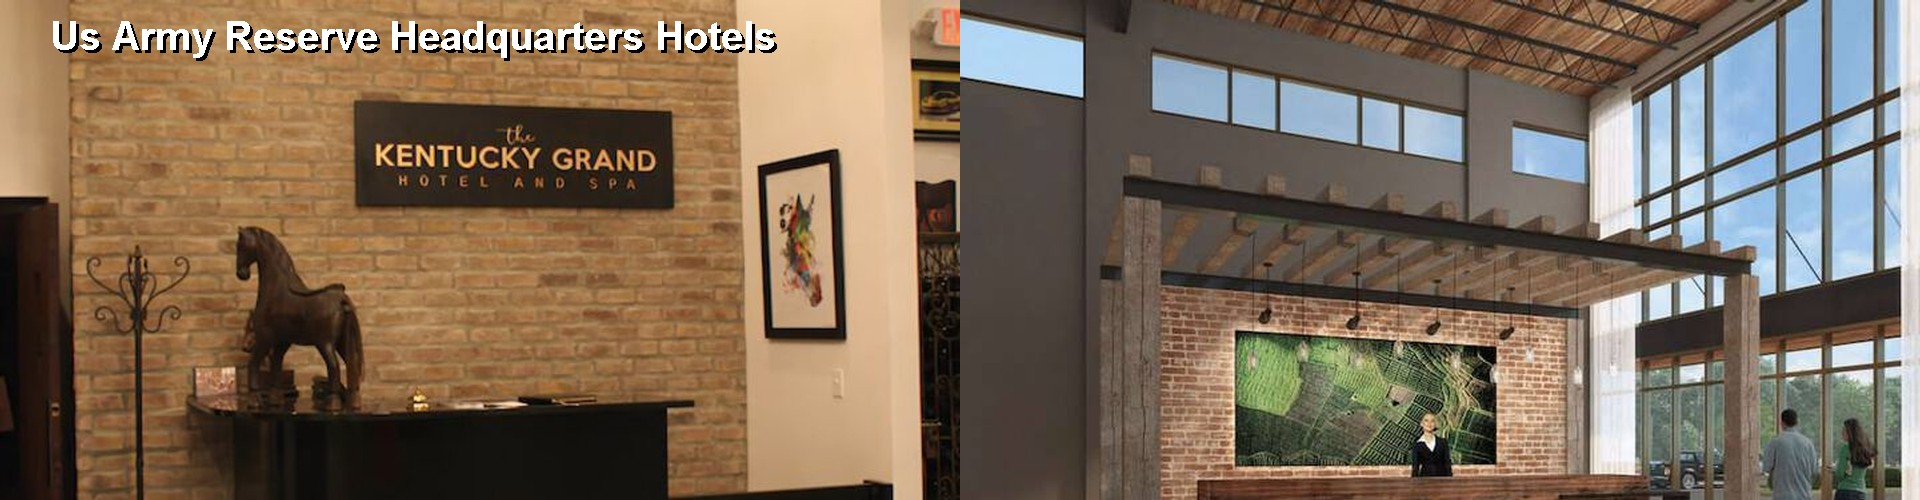 5 Best Hotels near Us Army Reserve Headquarters